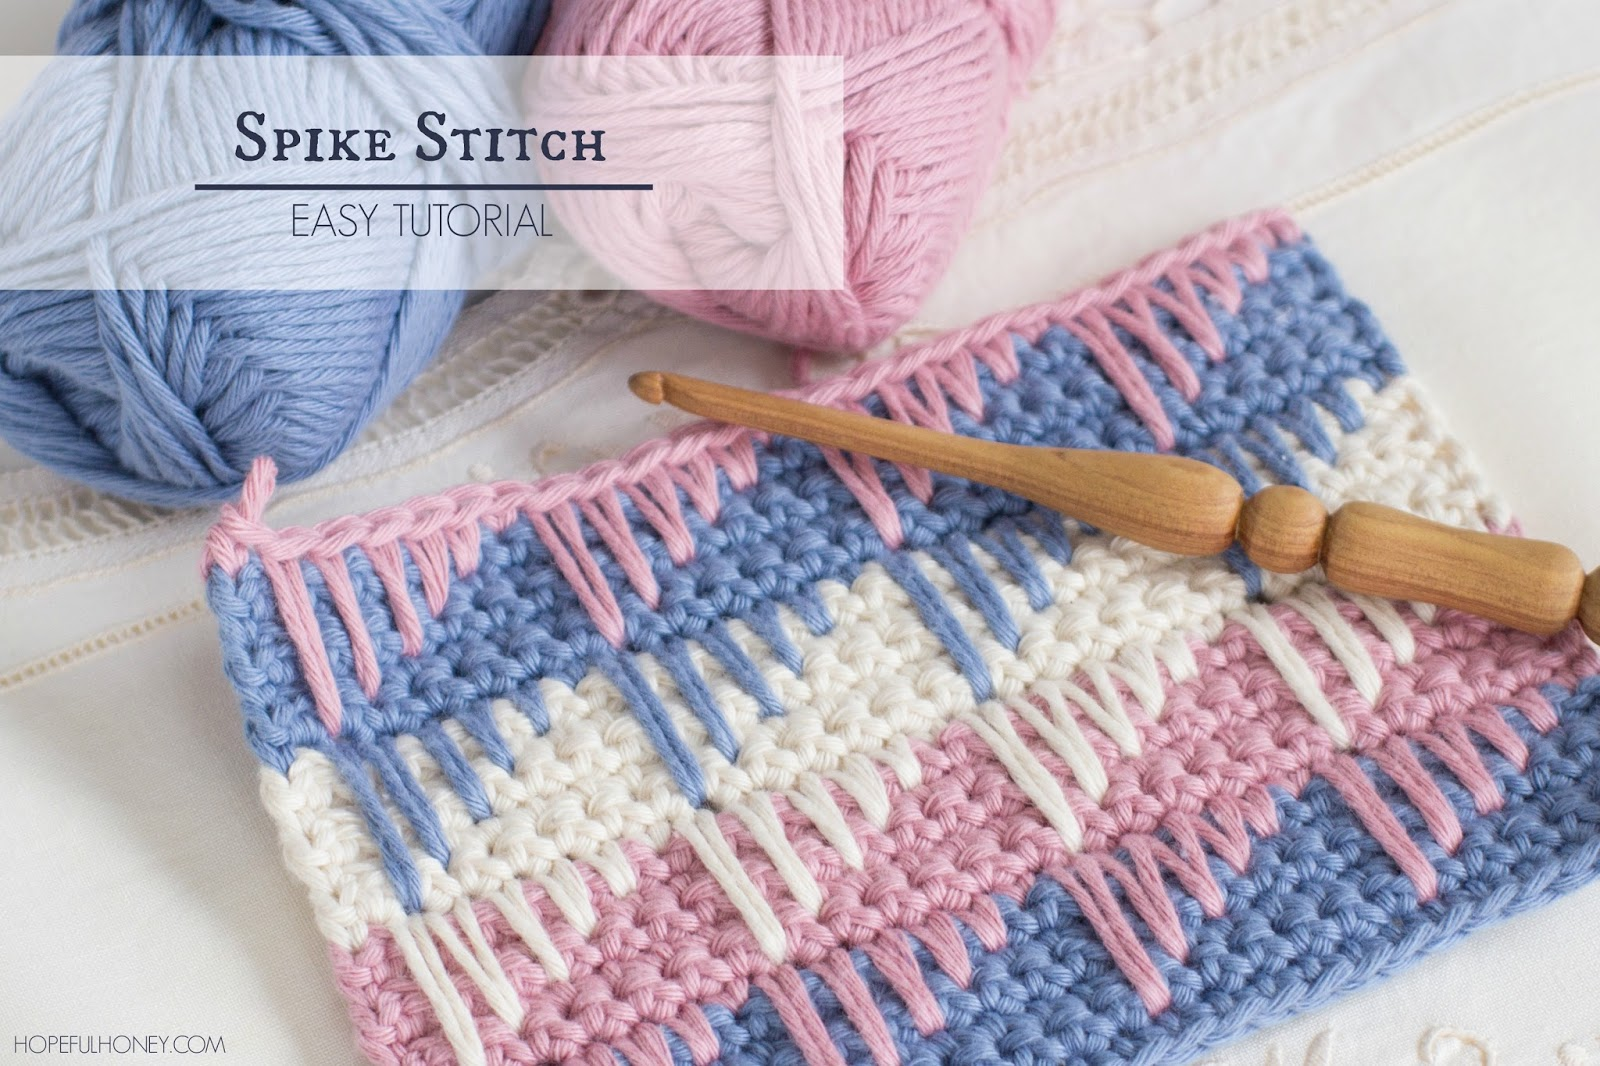 Crochet Stitches Tutorial : ... , Crochet, Create: How To: Crochet The Spike Stitch - Easy Tutorial